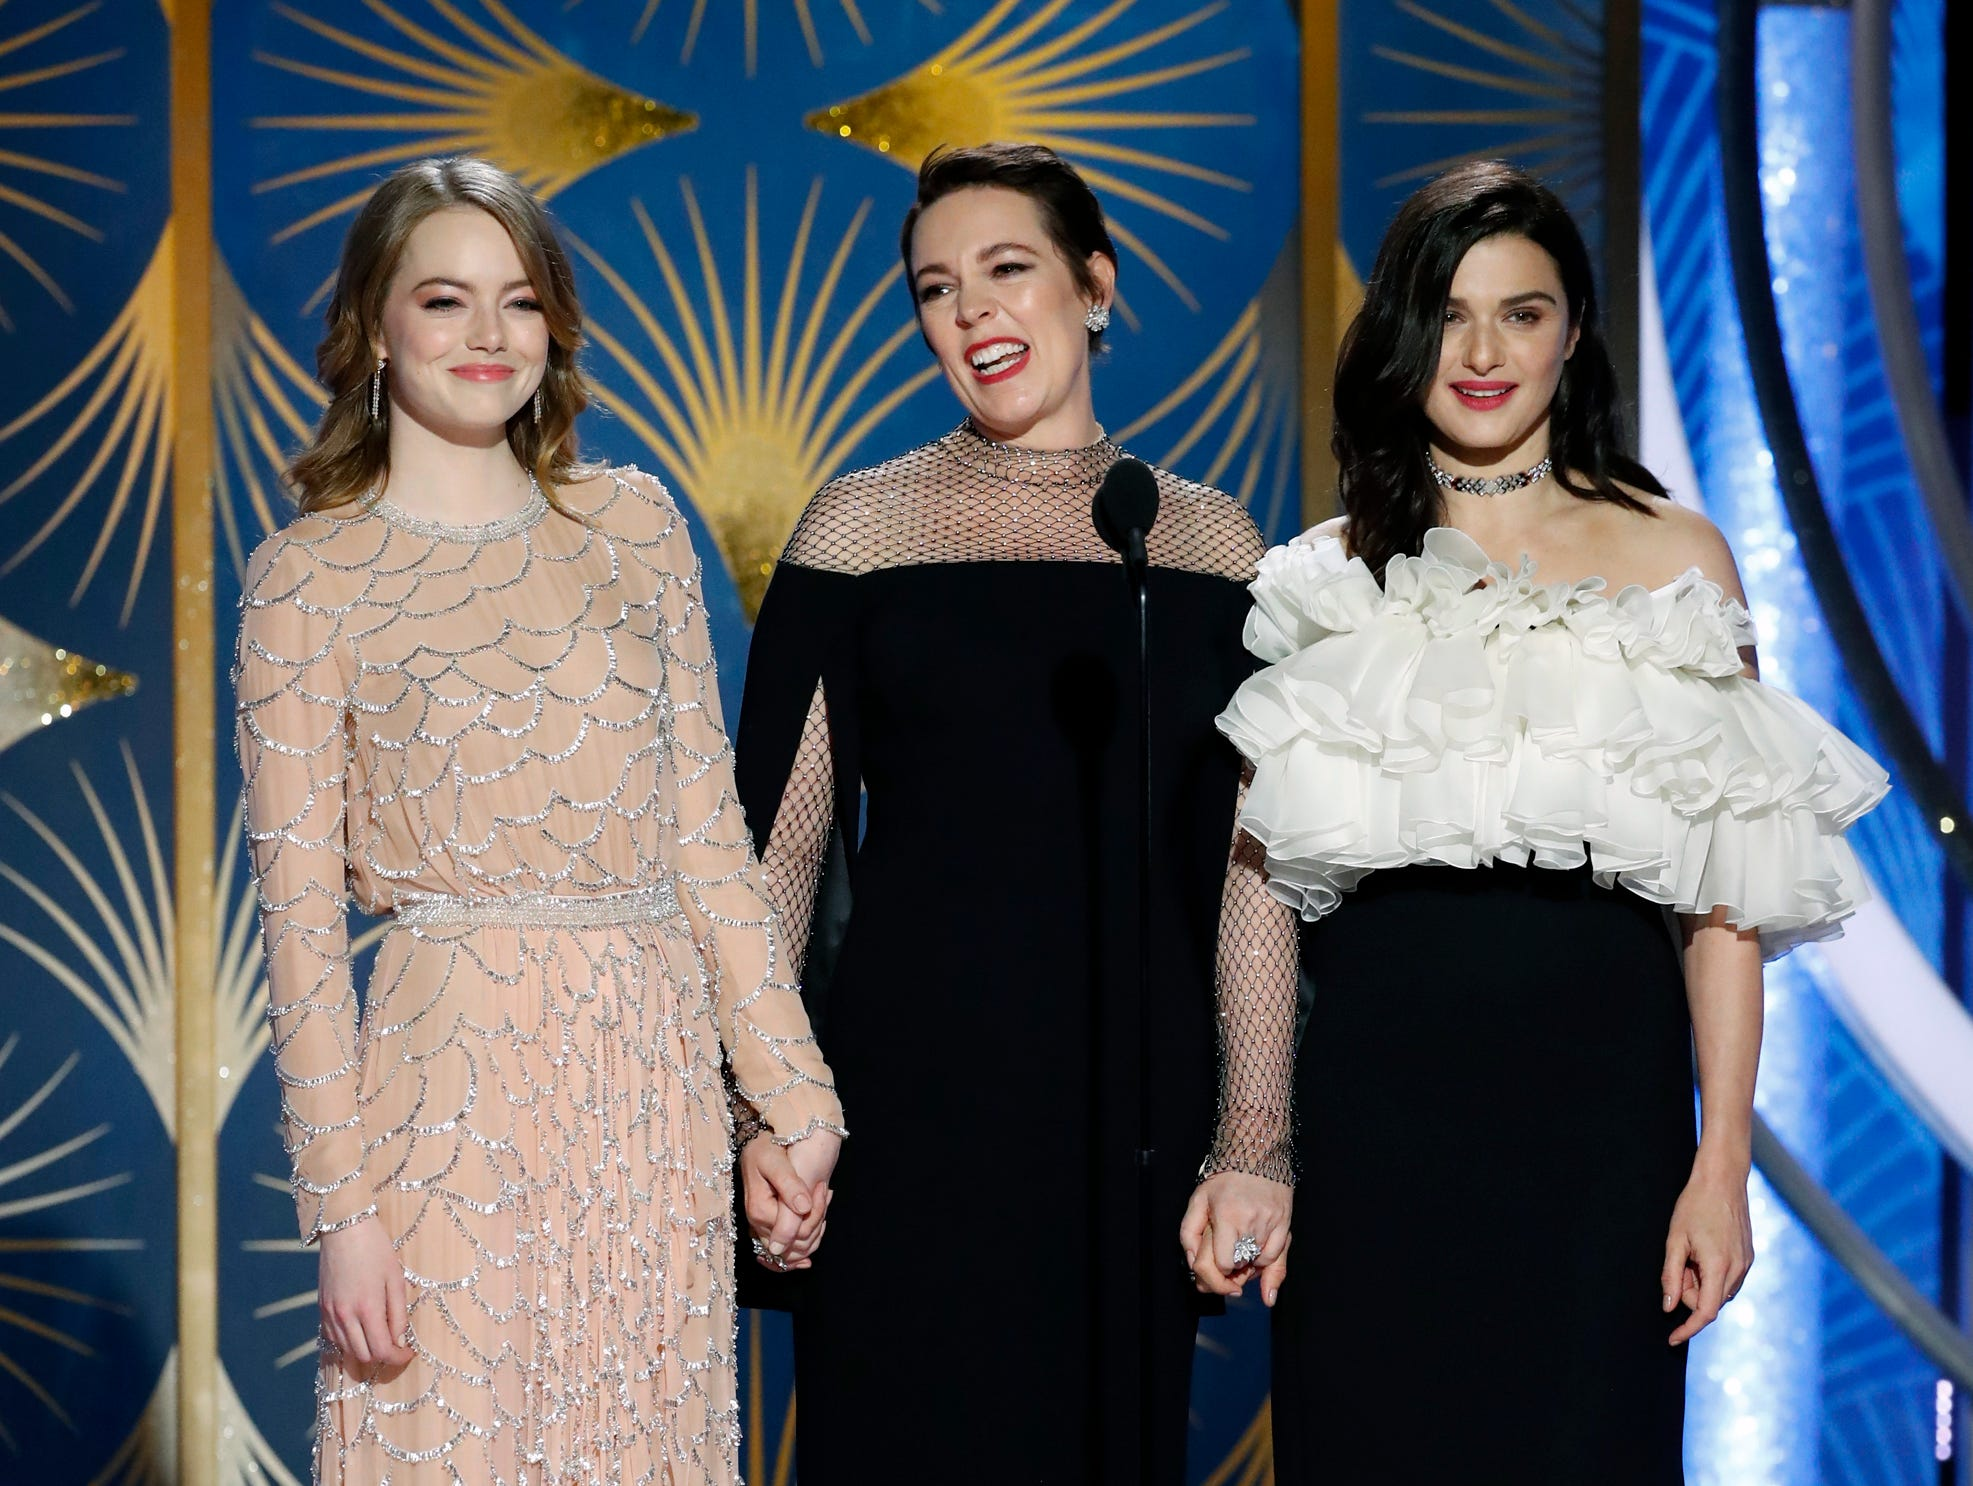 This image released by NBC shows presenters Emma Stone, from left, Olivia Colman, Rachel Weisz during the 76th Annual Golden Globe Awards at the Beverly Hilton Hotel.